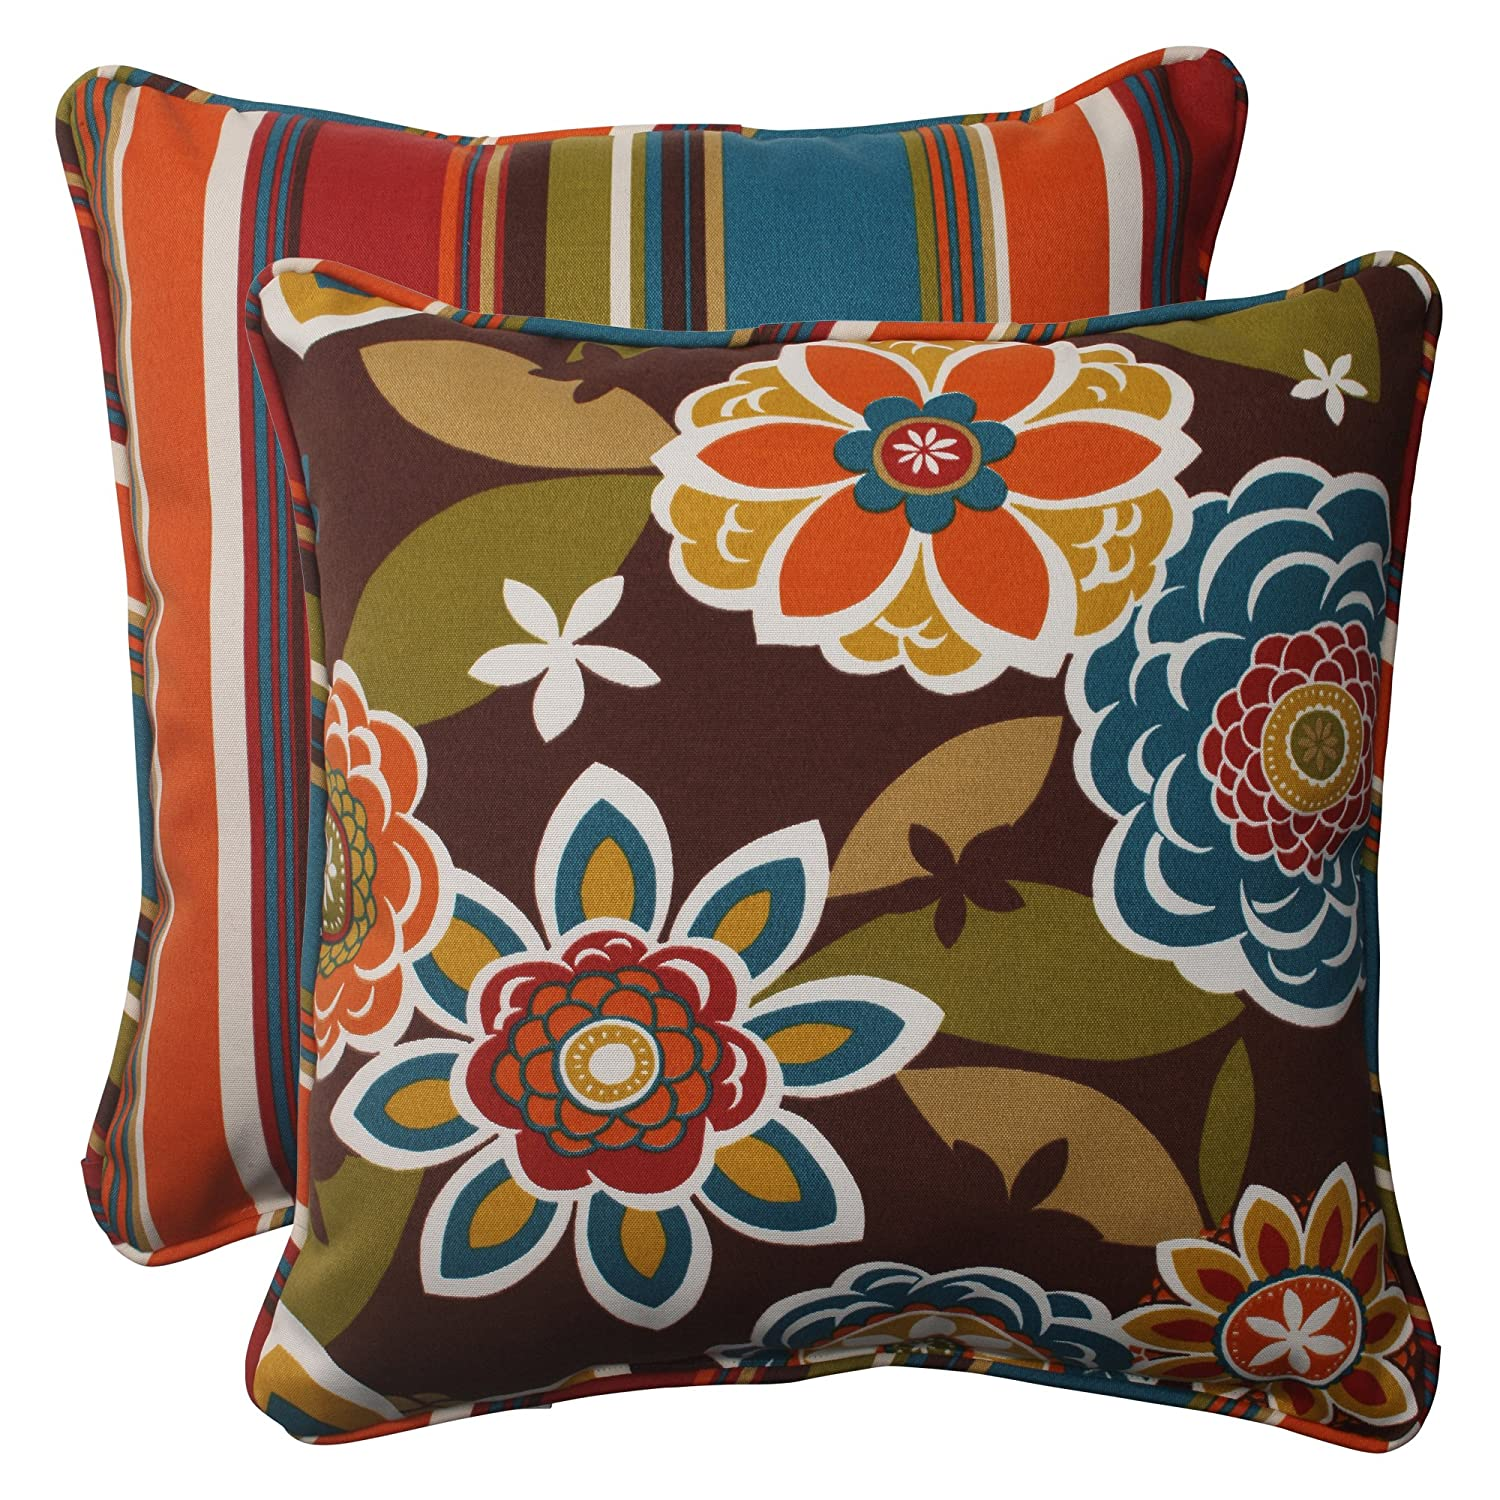 Westport Reversible Corded Throw Pillow, 18.5-Inch, Chocolate, Set of 2